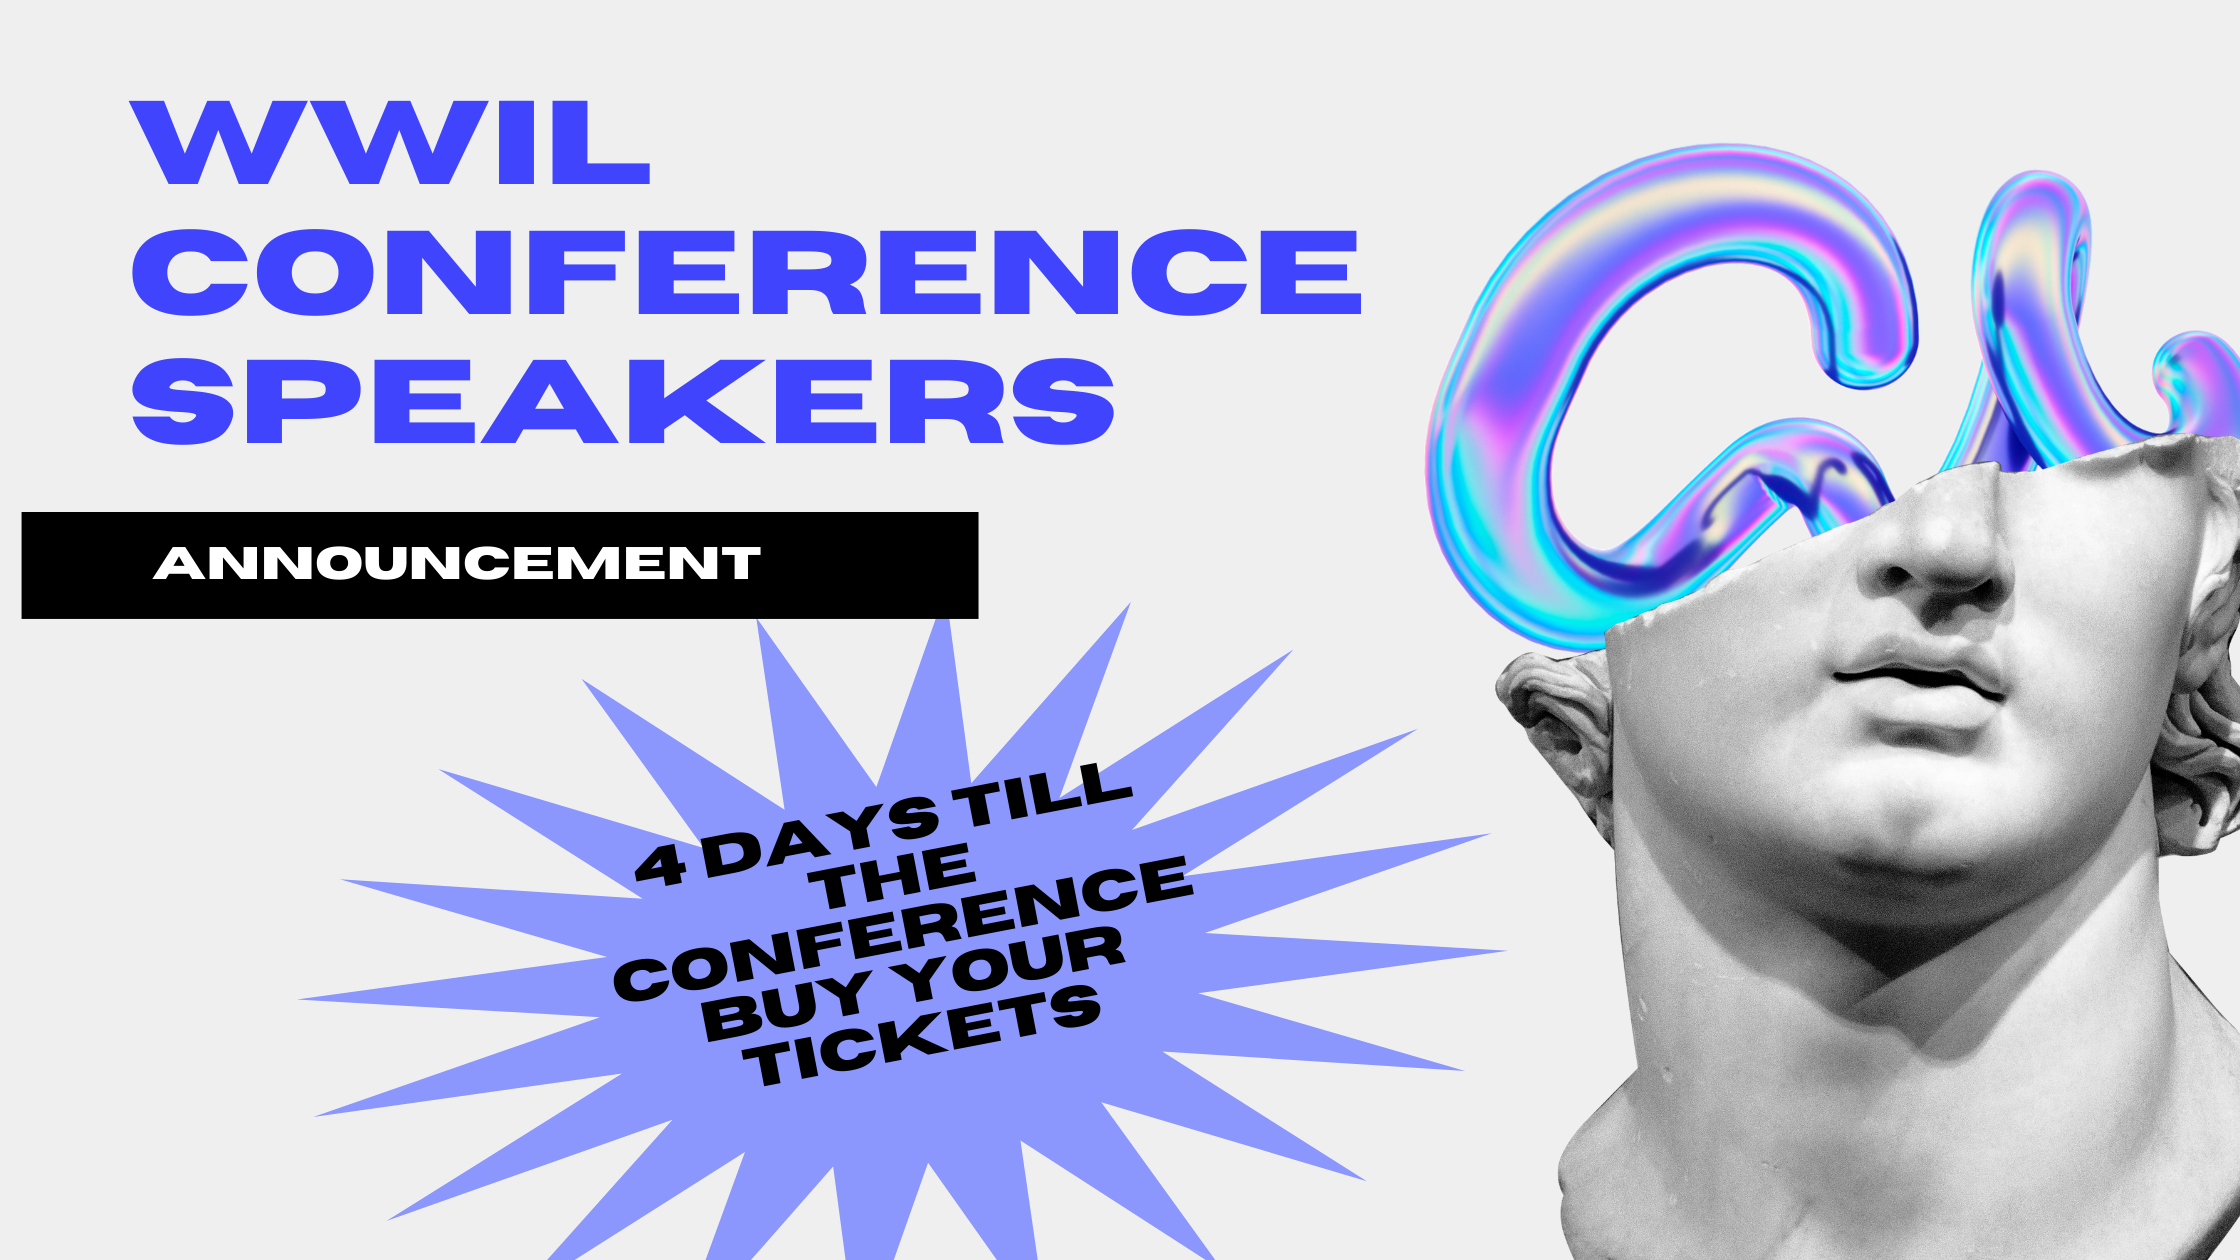 Wwil-conference-speakers